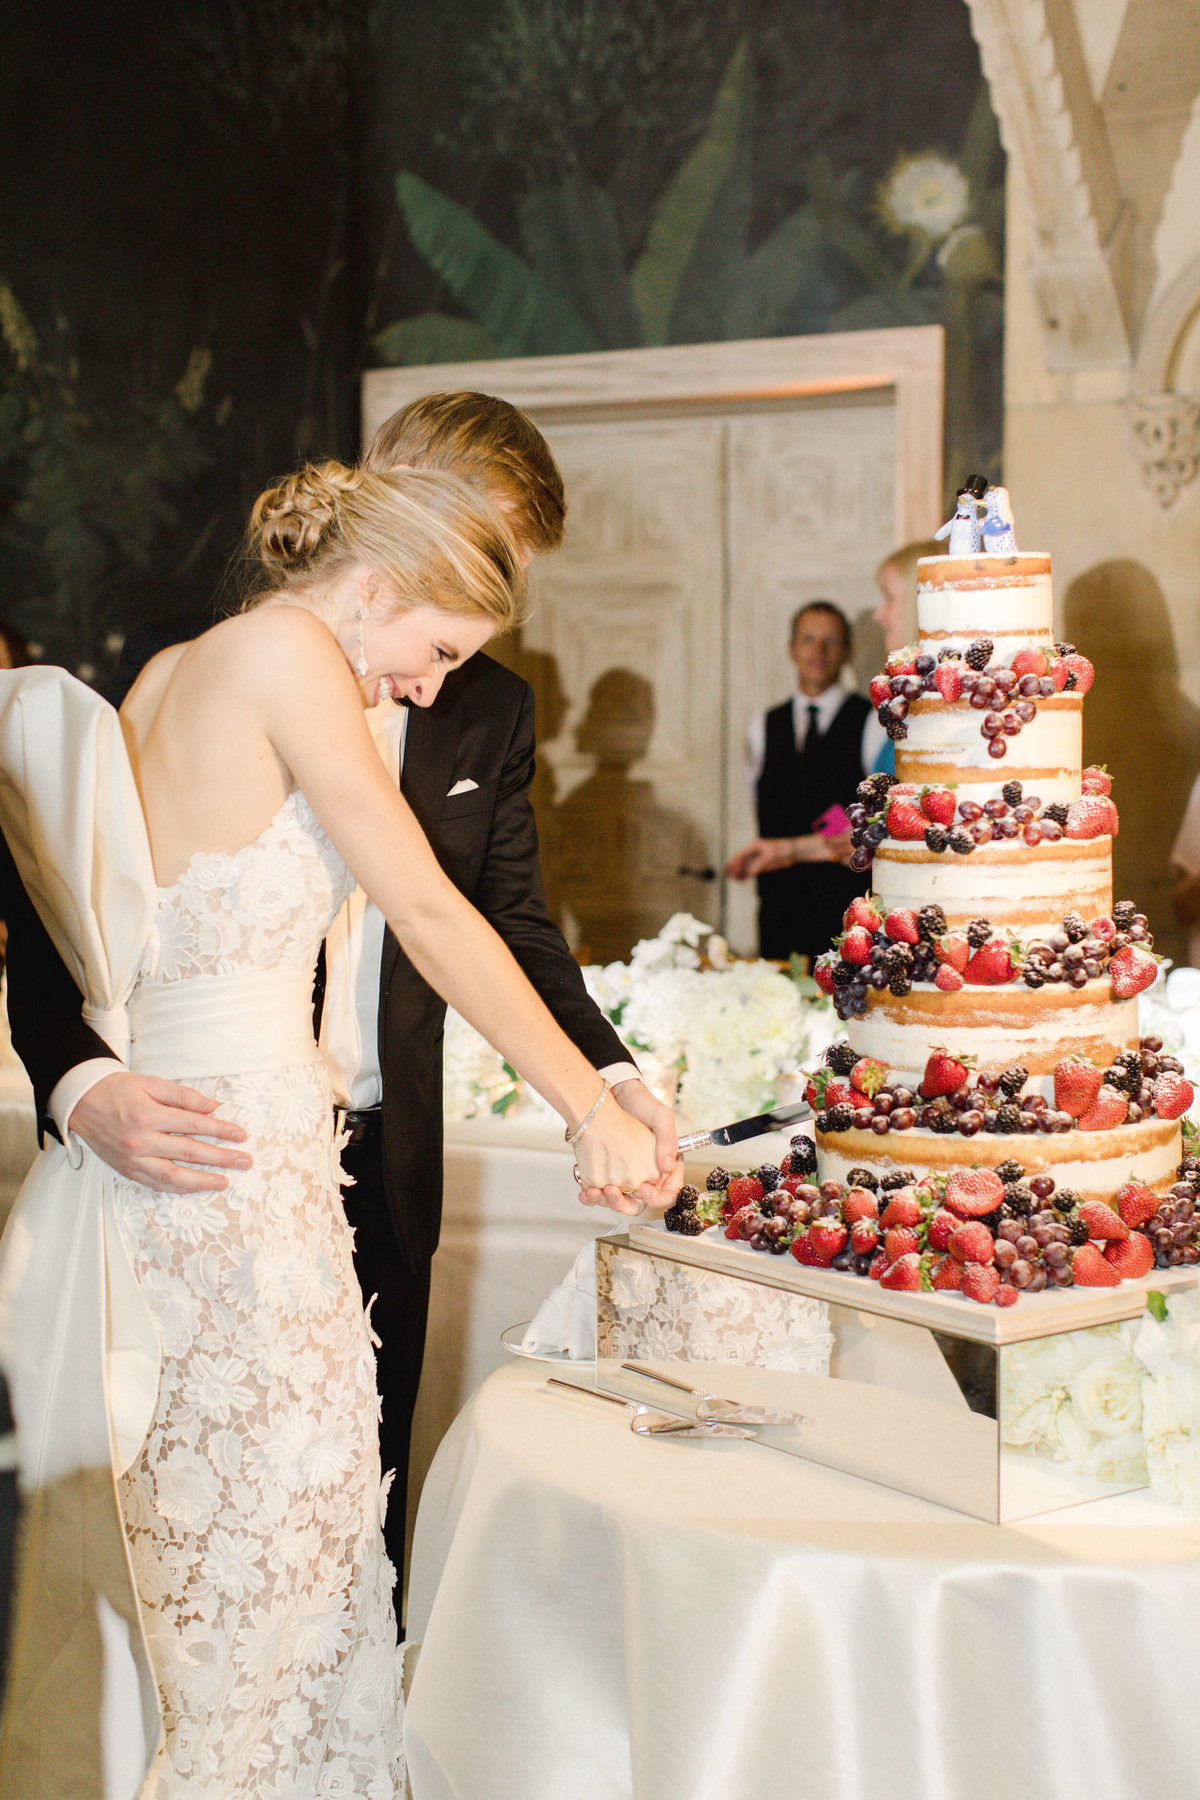 64-KTMerry-weddings-cake-cutting-Palm-Beach